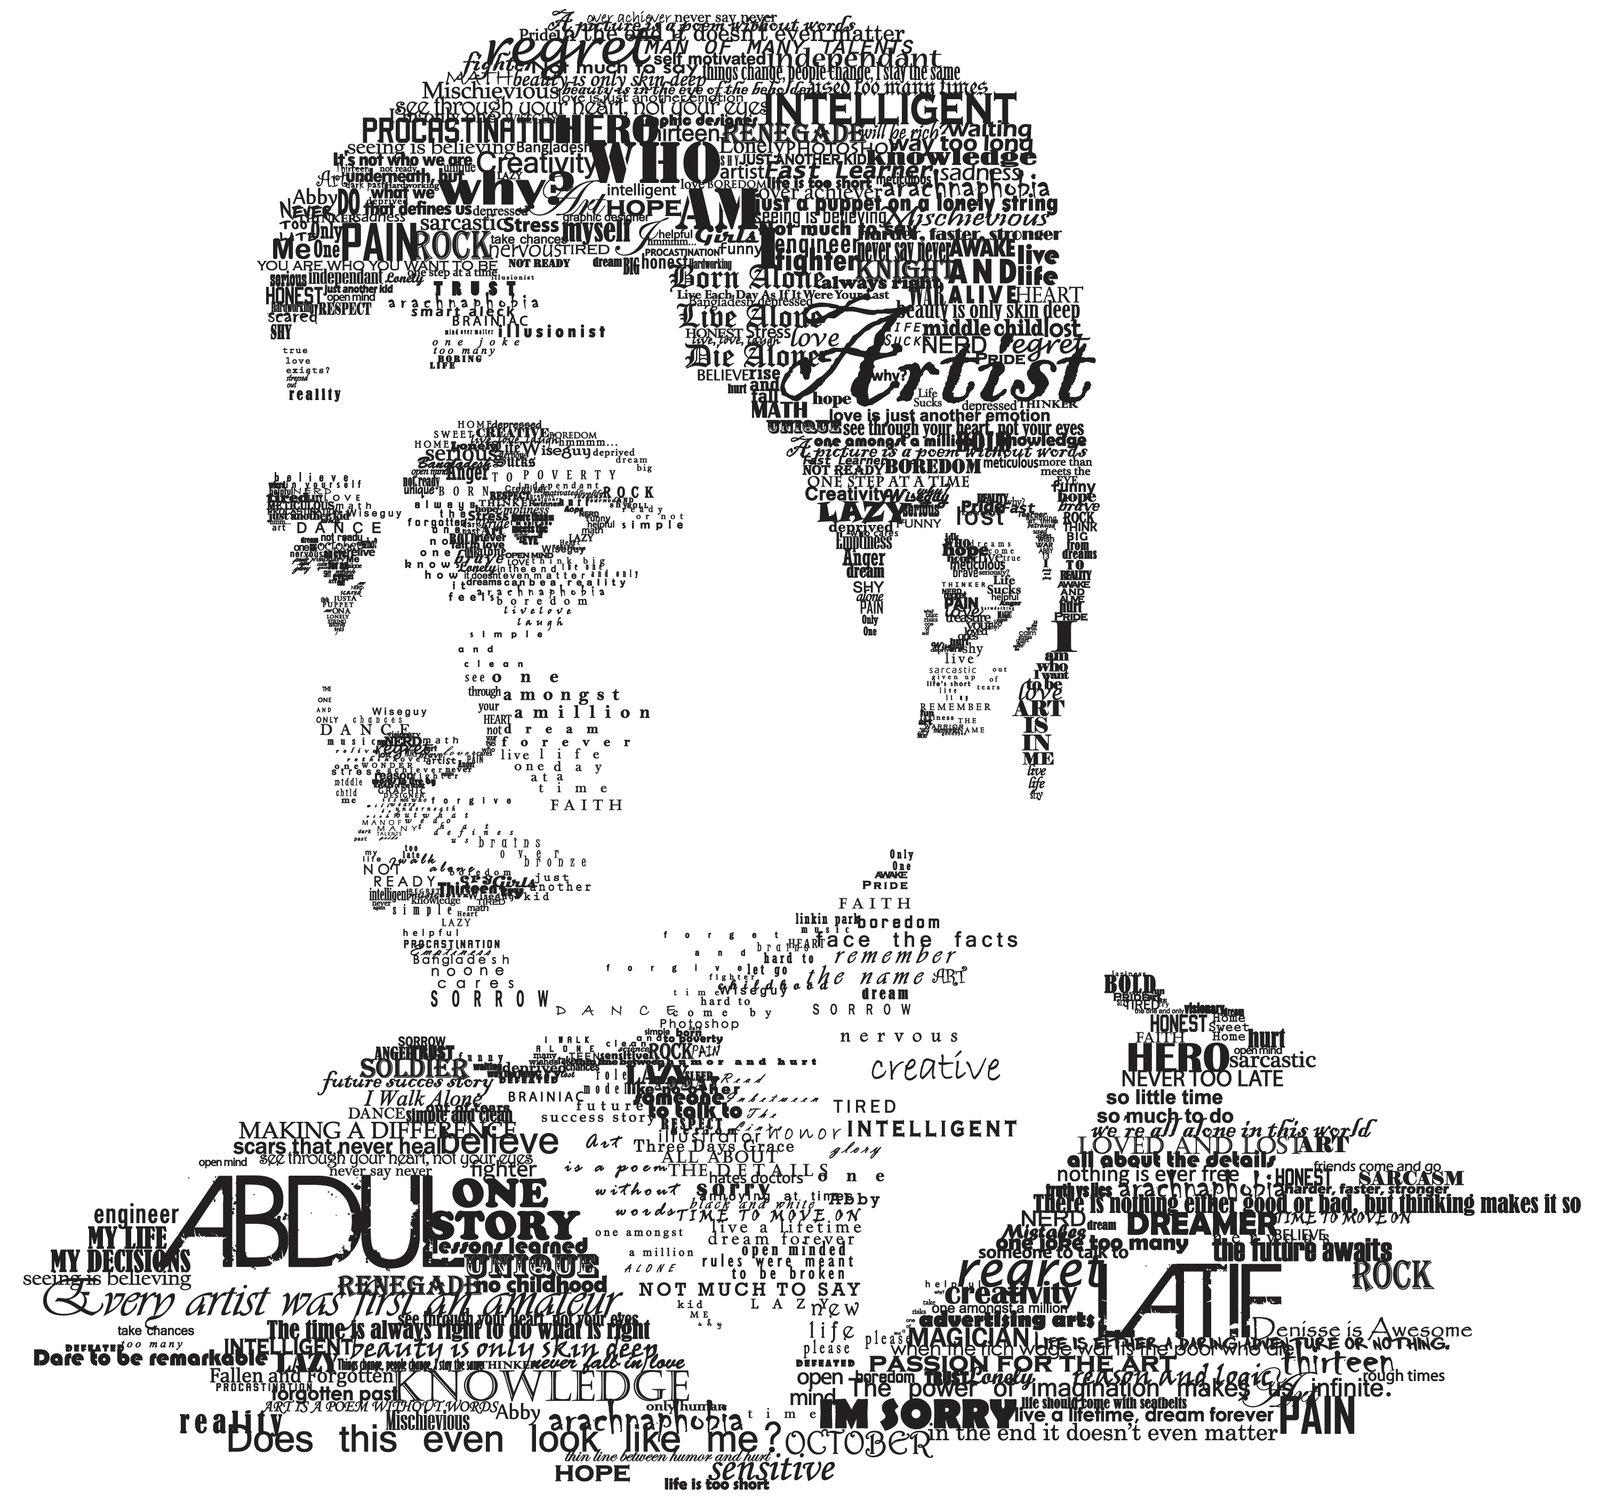 typography_self_portrait_by_renegade_knight-d34k3pf.jpg 1,600×1,500 pixels